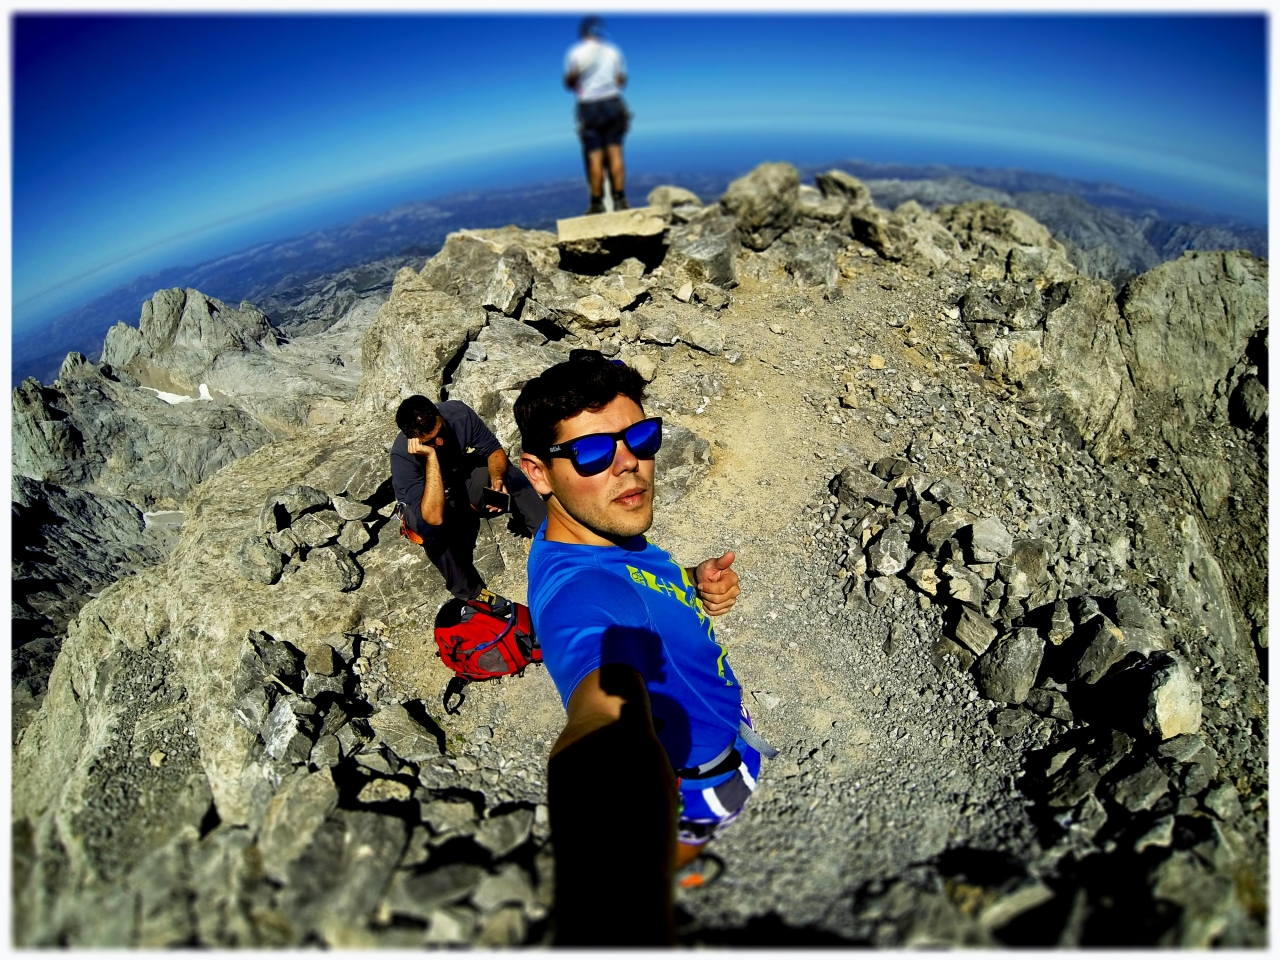 A picture from Picos de Europa by Esteban Rodriguez